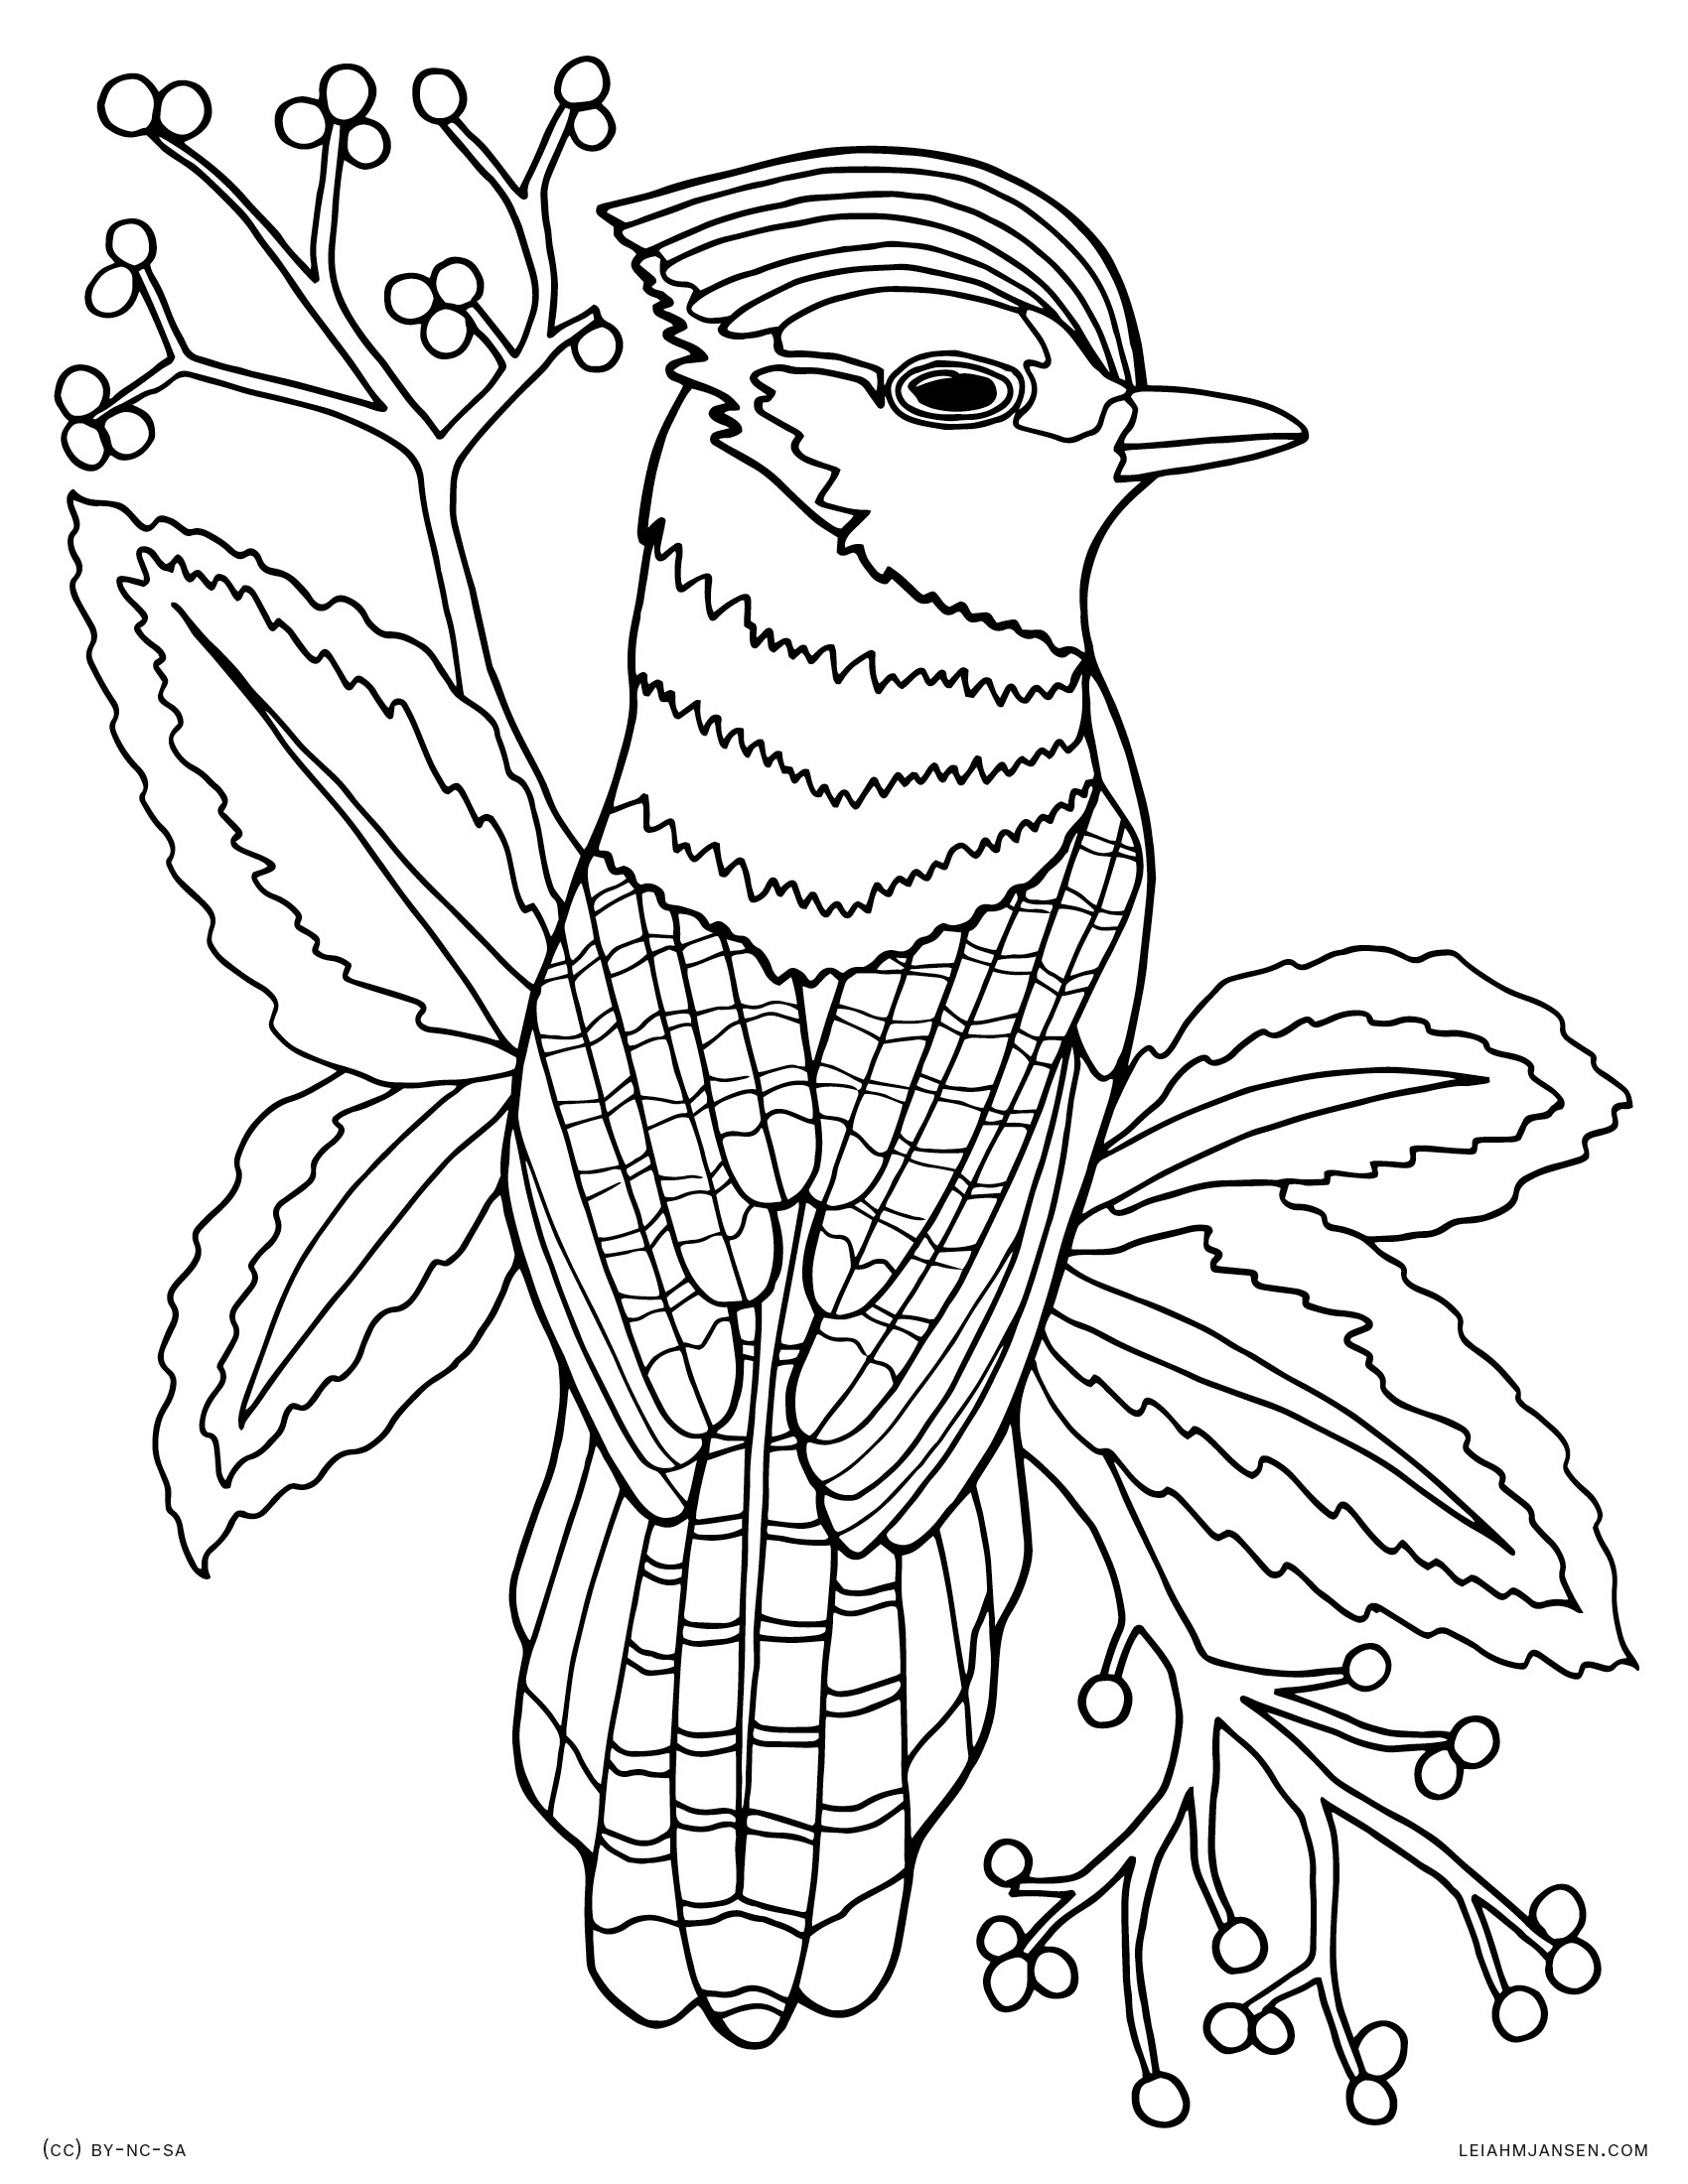 Coloring Pages - Free Printable Coloring Pages For March